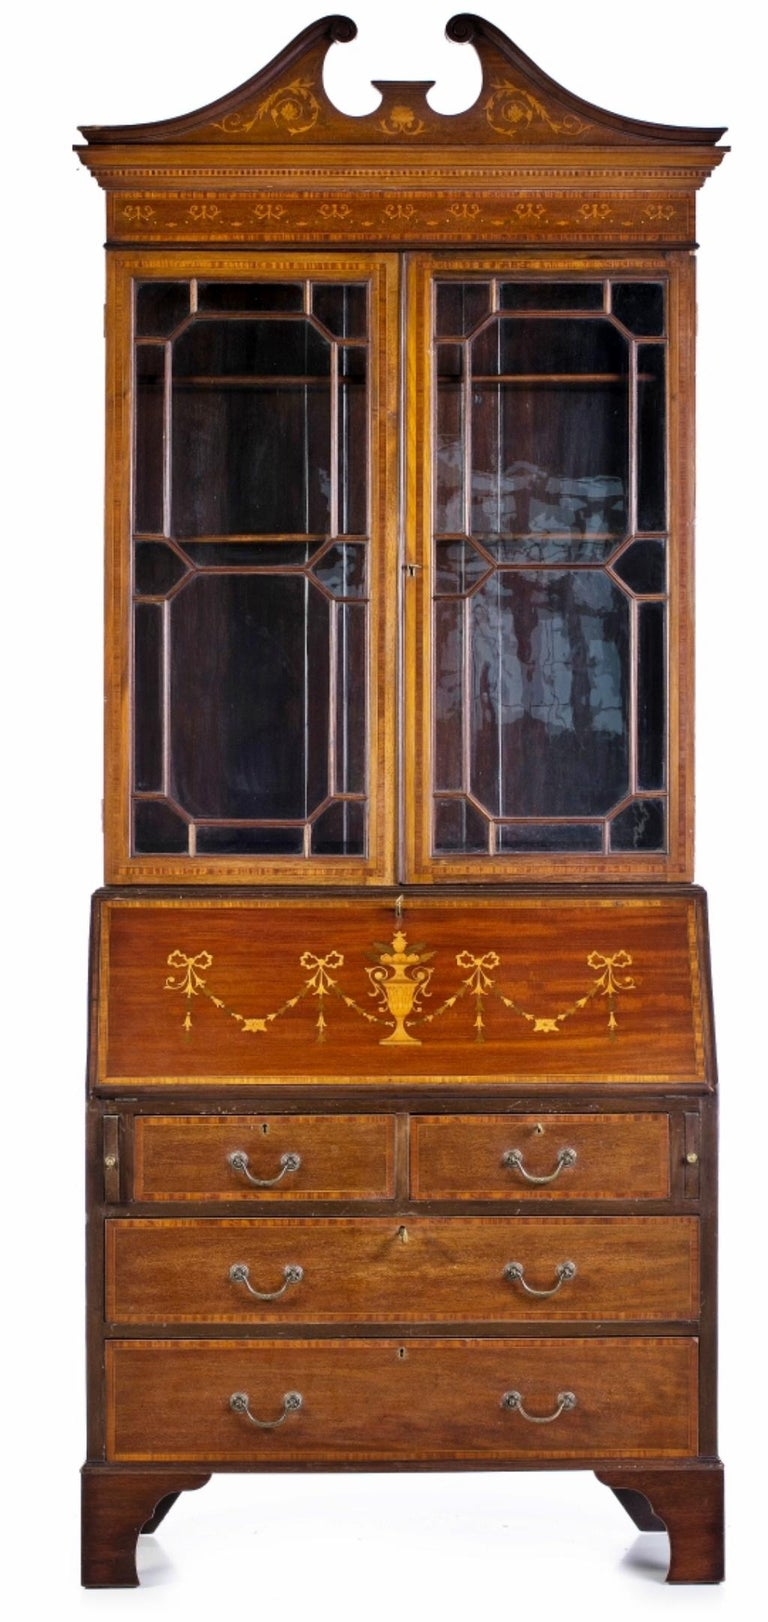 English secretary with elevation English, from the 19th century. In mahogany wood. Upper body with two glass doors, interior with shelves. Neoclassic pediment shaped finish. Lower body consisting of 2 drawers and 2 drawers, factory with central